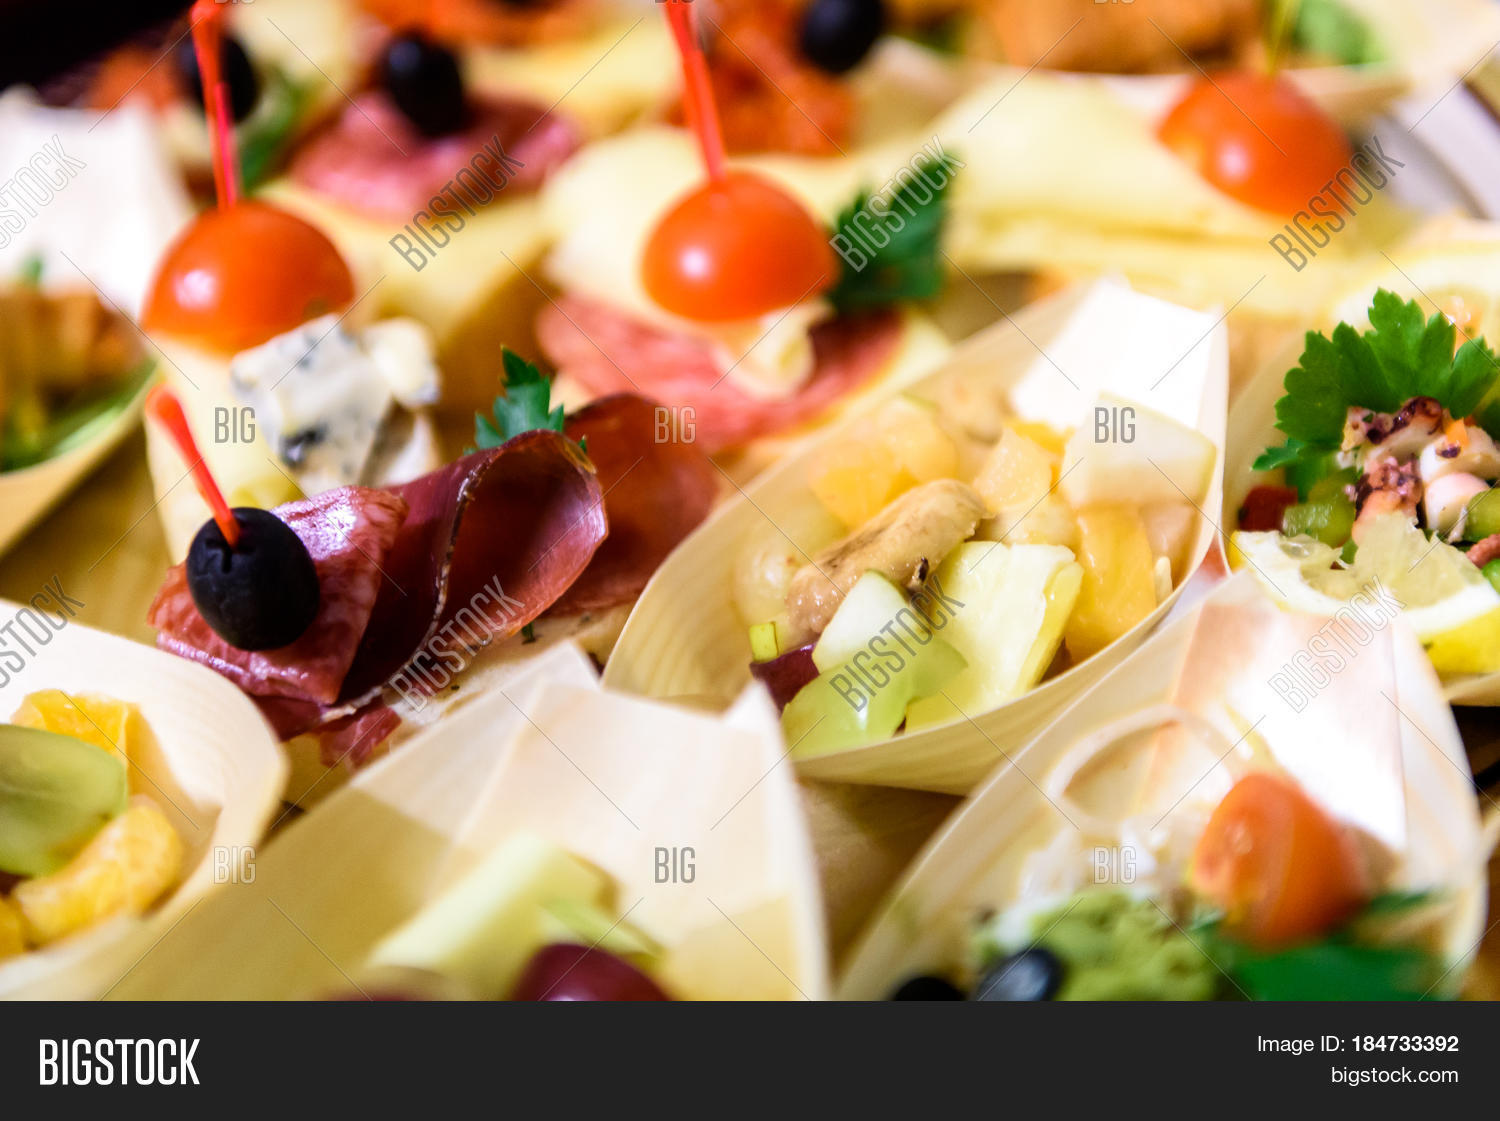 Home made canapes small sandwiches image photo bigstock for Canape wraps